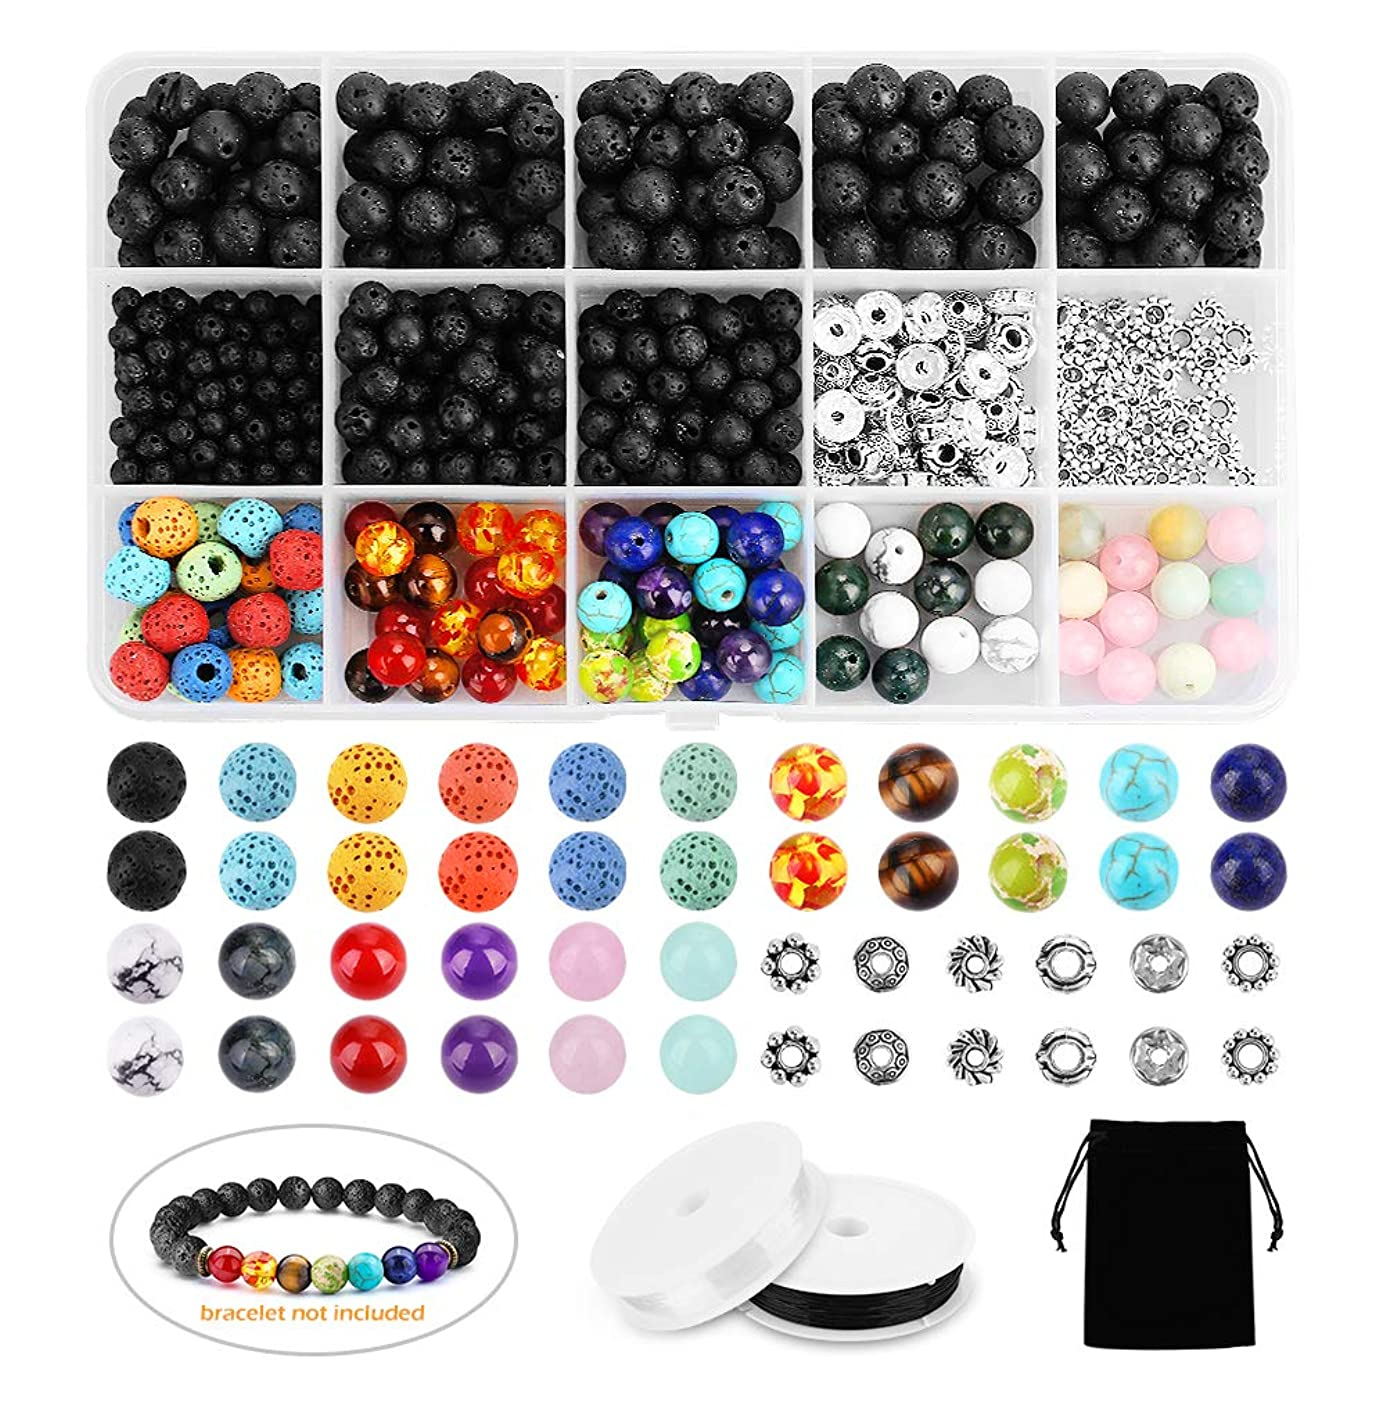 Lava Bead Kit SOLEDI 526PCS Jewelry Making Beads Rock Stone Beads with Chakra Beads and Spacer Beads for Essential Oil and Jewelry Making, Great for Fun DIY Arts & Crafts